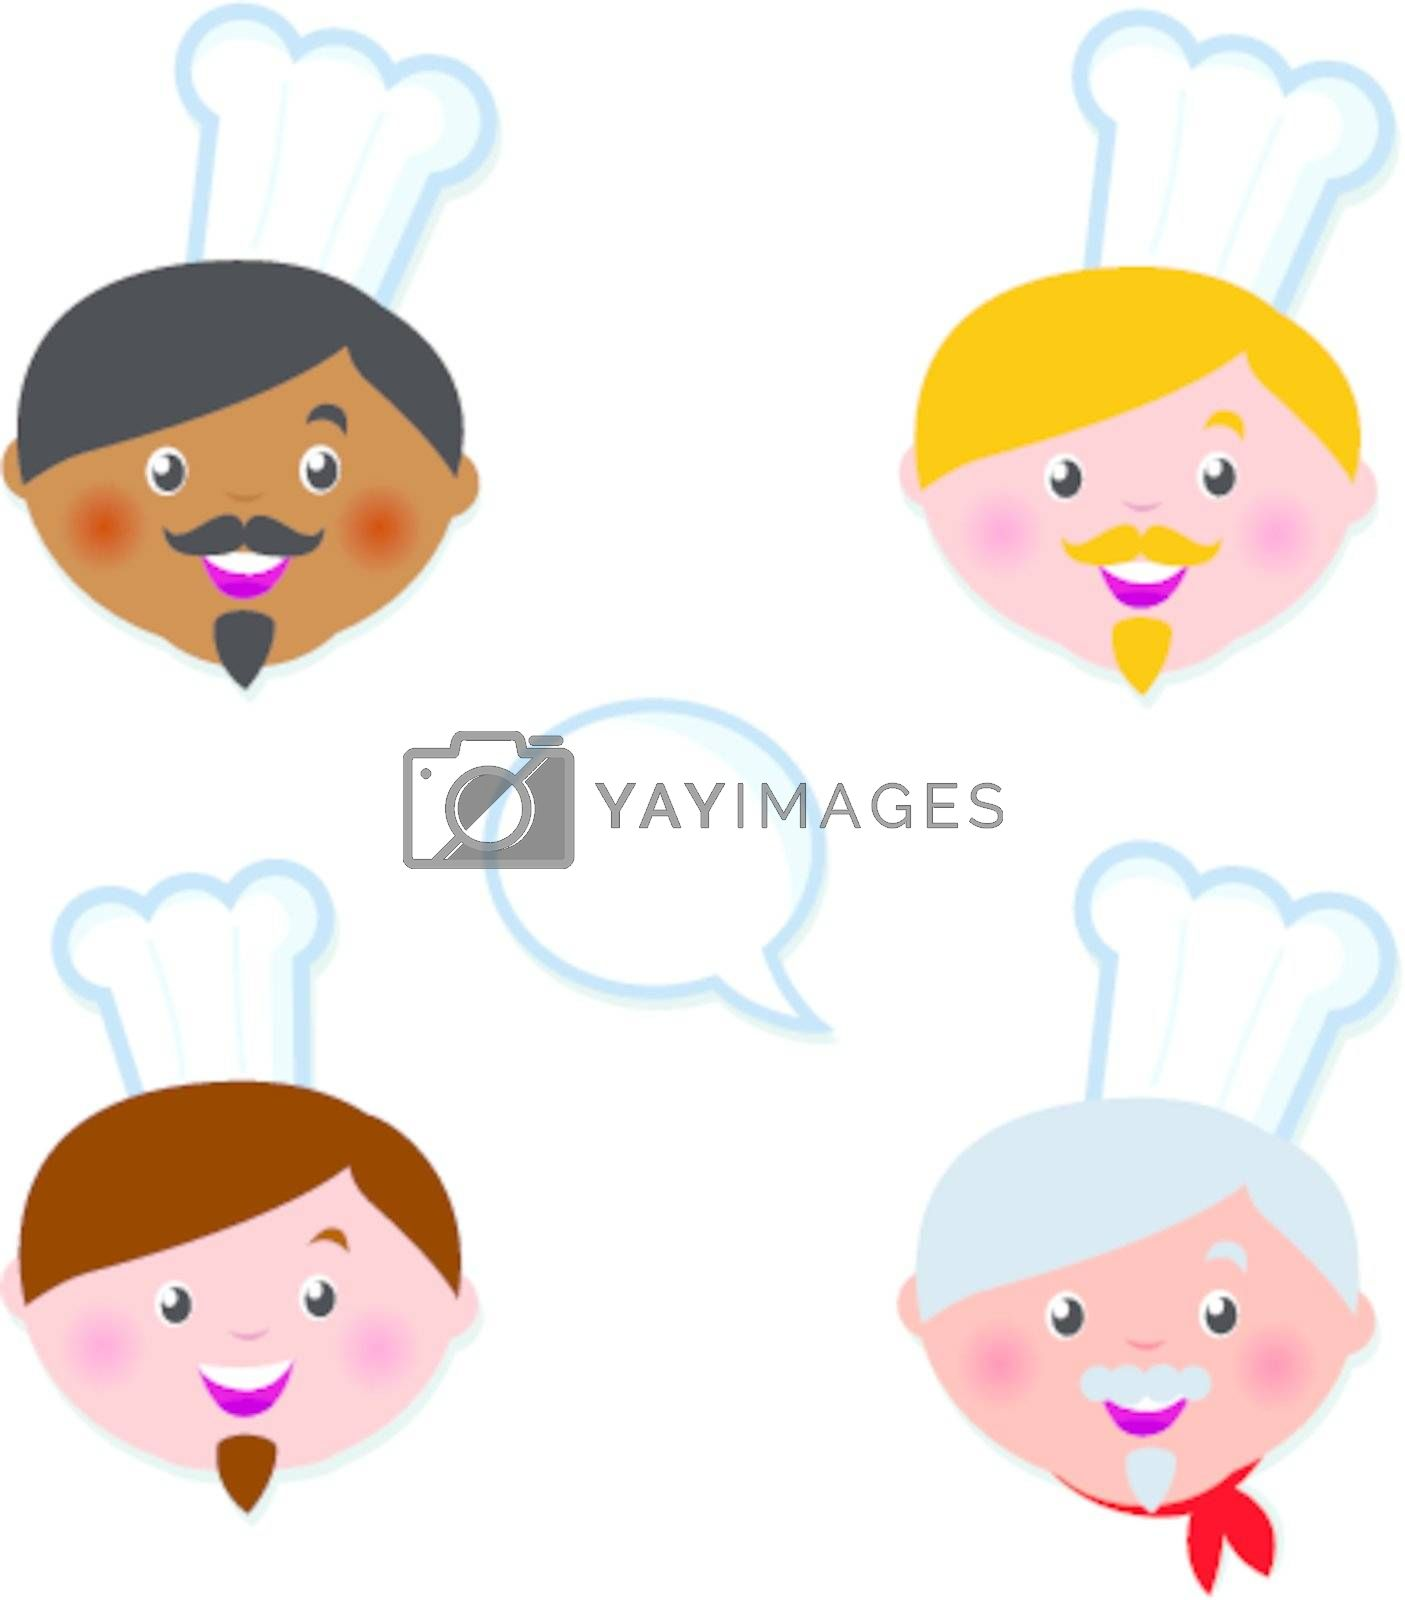 Cute multicultural Cheef icons - isolated on white